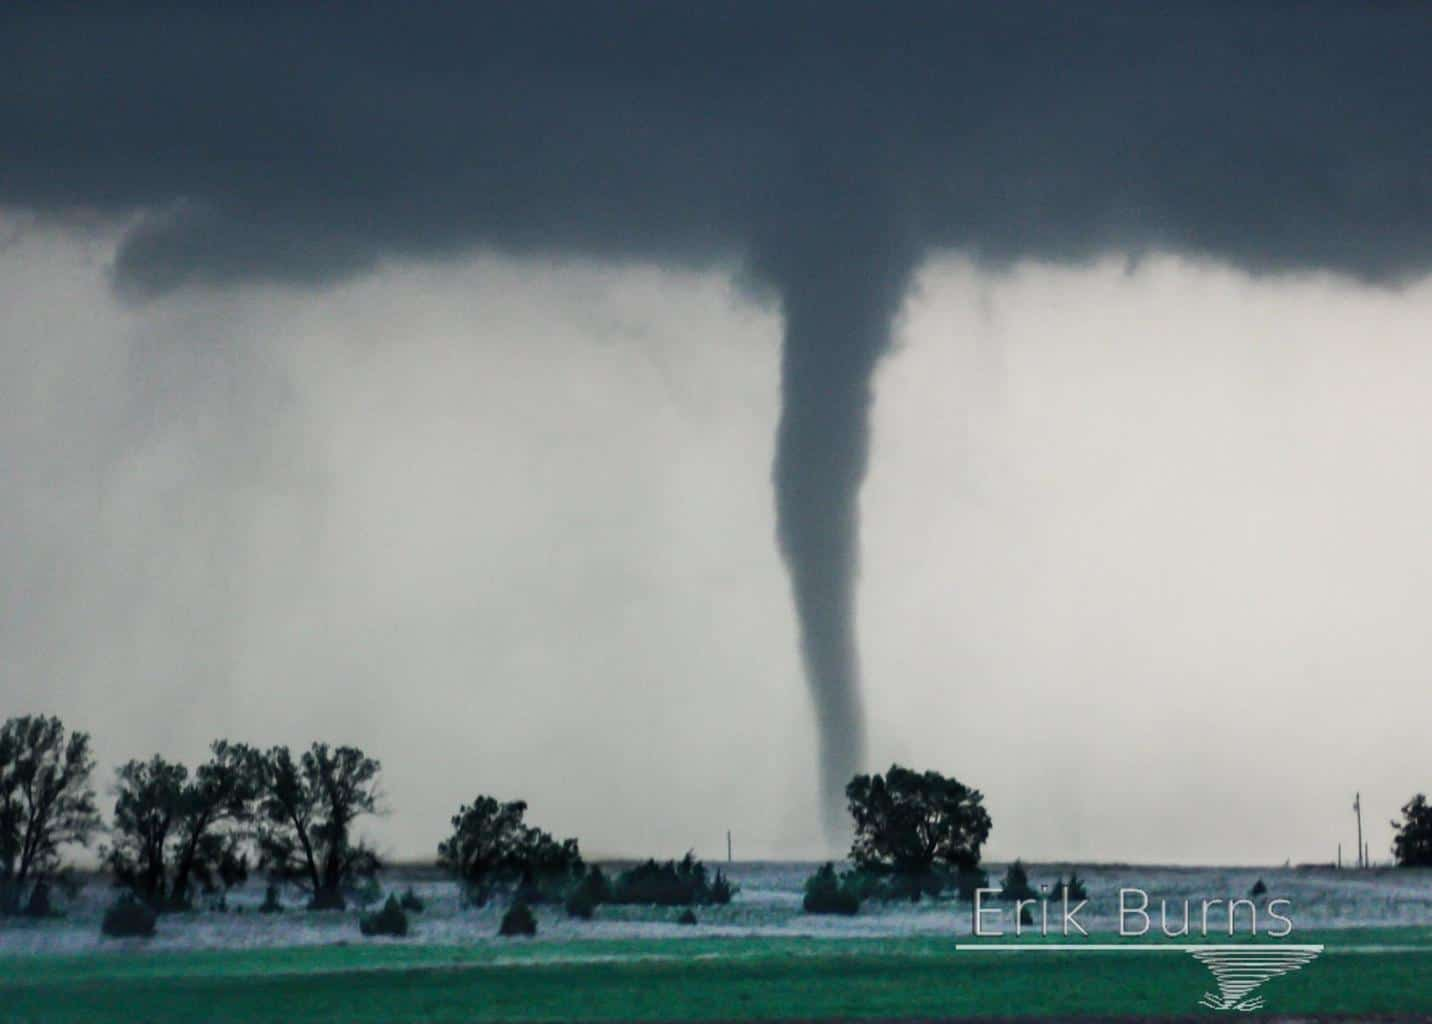 There are few sights more incredible or memorable than watching a slow moving tornado in open countryside. Where you can watch from a lawn chair if you like. April 14, 2012 Cherokee, OK.